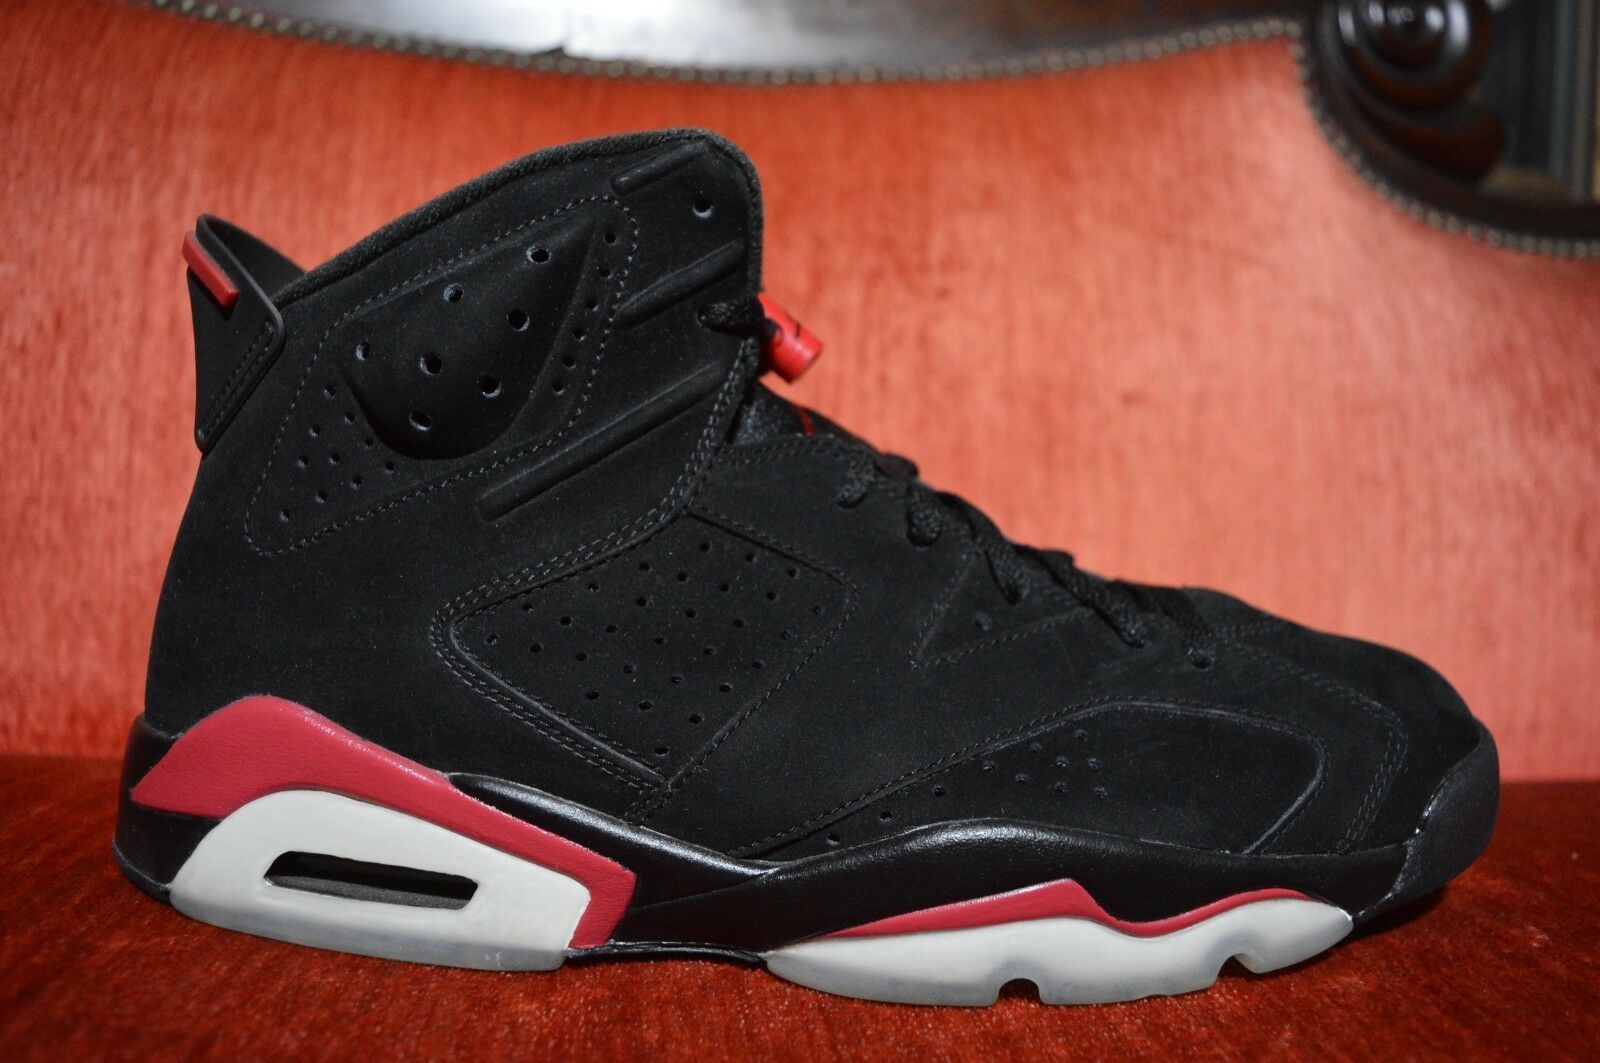 WORN 1X 2010 NIKE AIR JORDAN 6 VI RETRO BLACK-INFRARED Size 11 384664-003